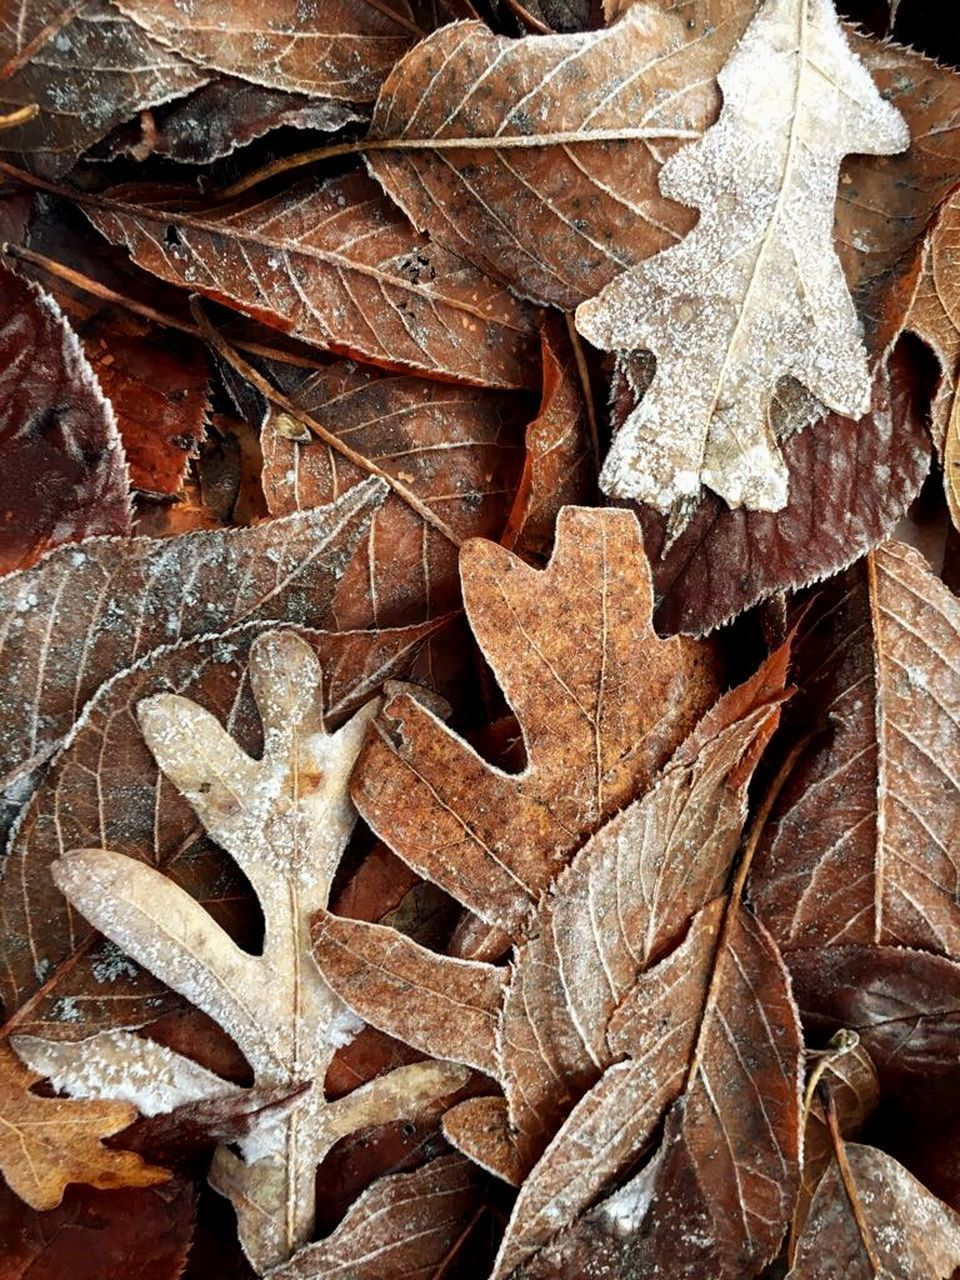 leaf, full frame, autumn, no people, wood - material, brown, close-up, day, outdoors, backgrounds, nature, winter